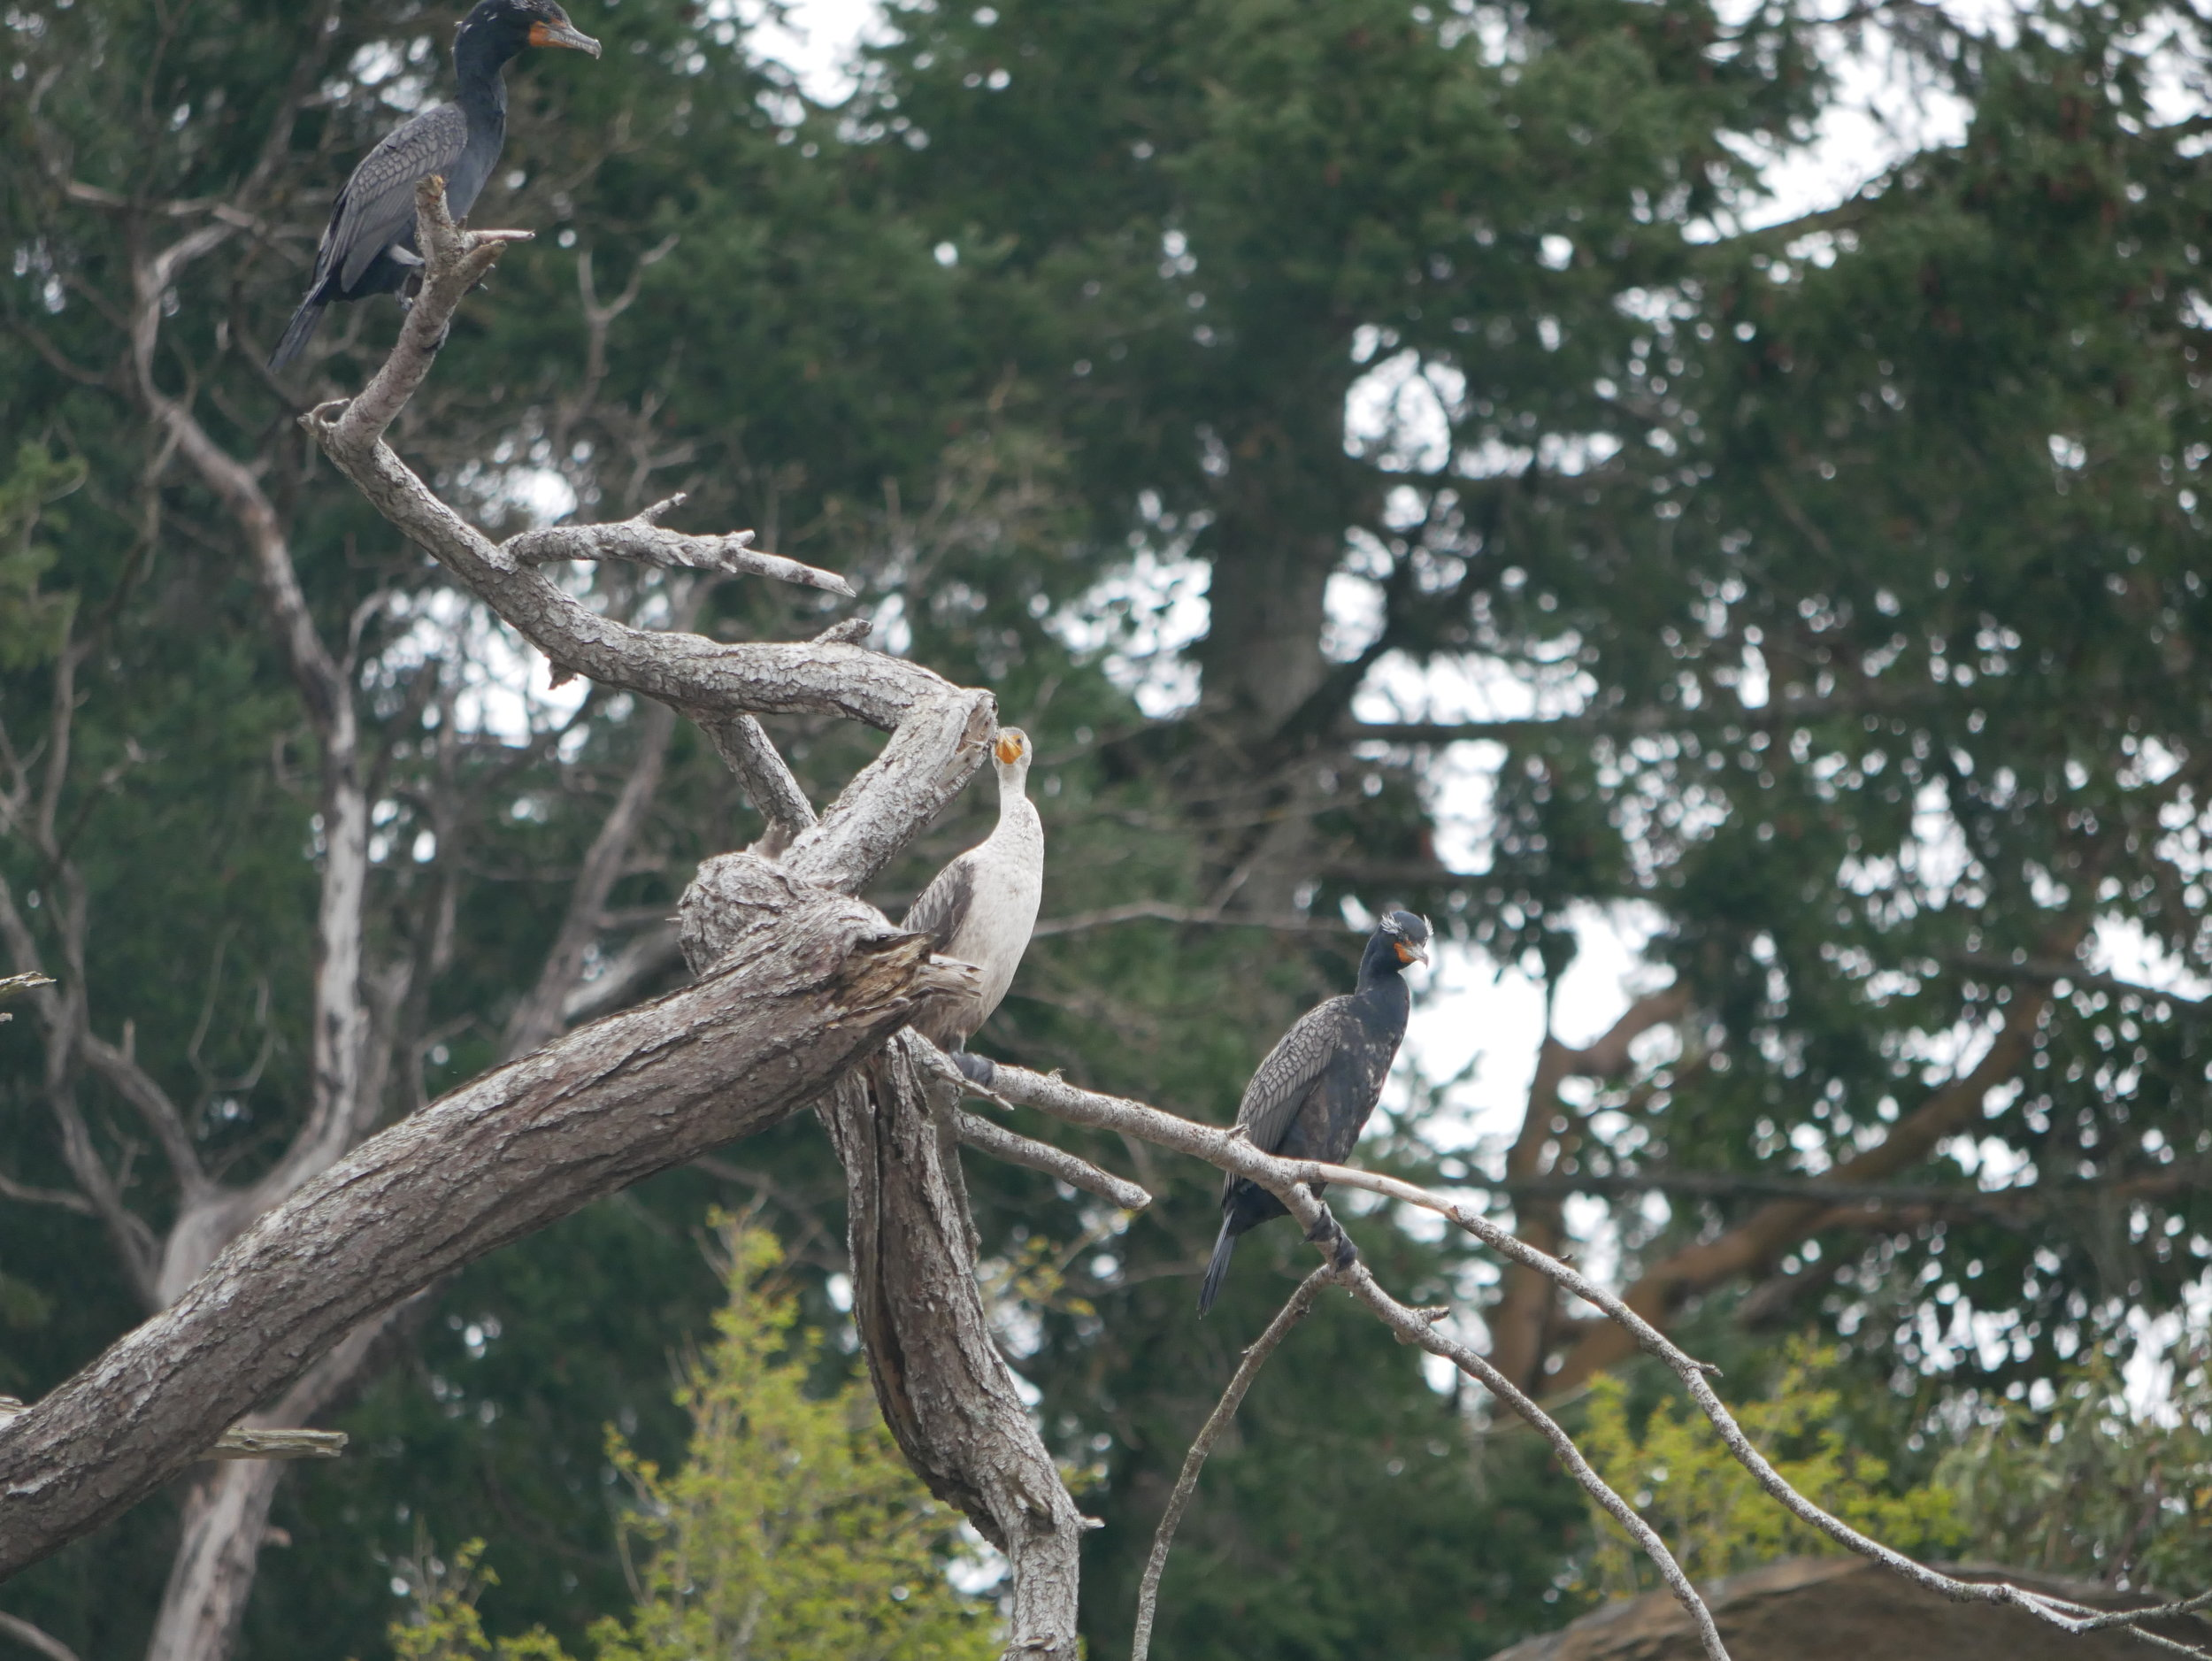 Cormorants in the trees at the Gabriola bluffs. Photo by Rodrigo Menezes